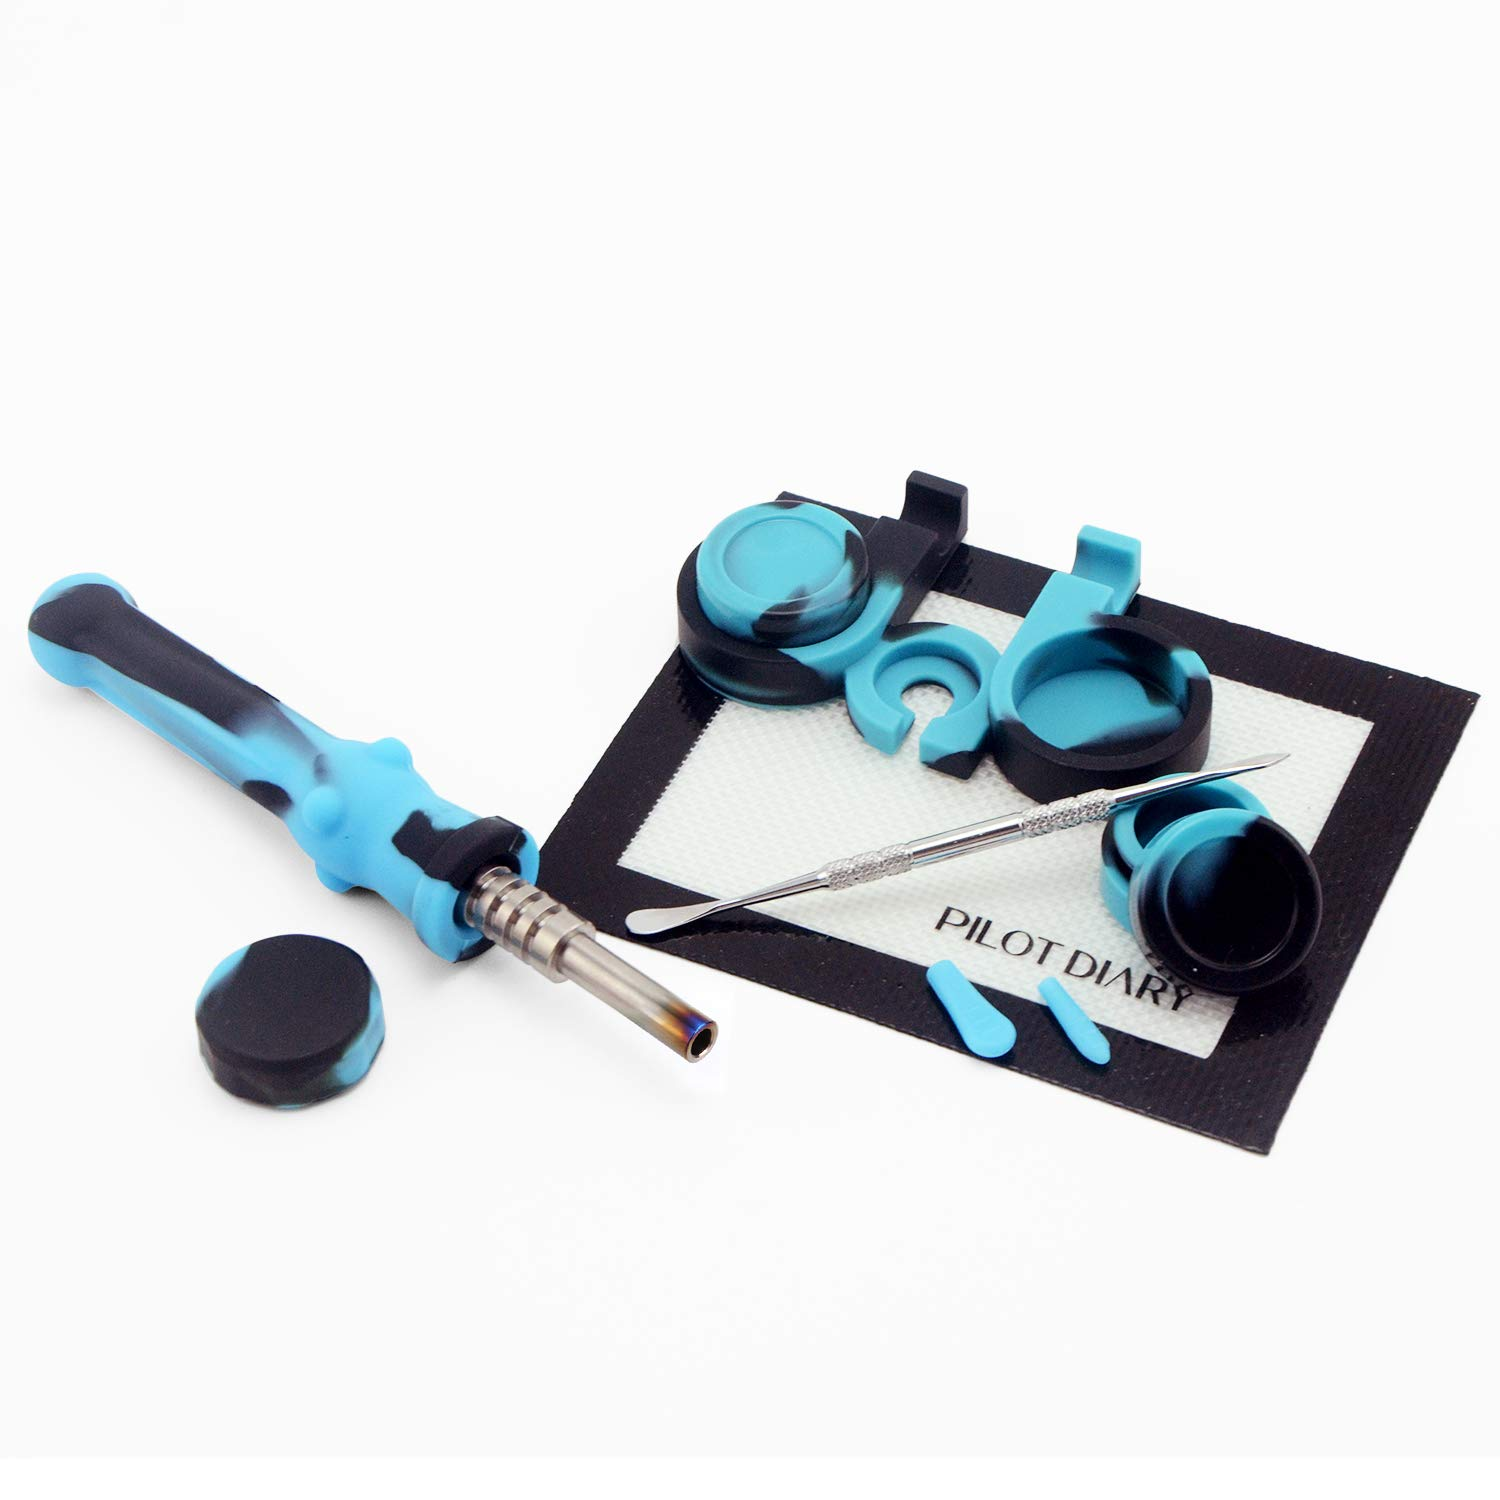 Pilot Diary Silicone Honey Straw 6.5'' Dark&Blue w/Silicone Wax Carving Kit by Pilot Diary